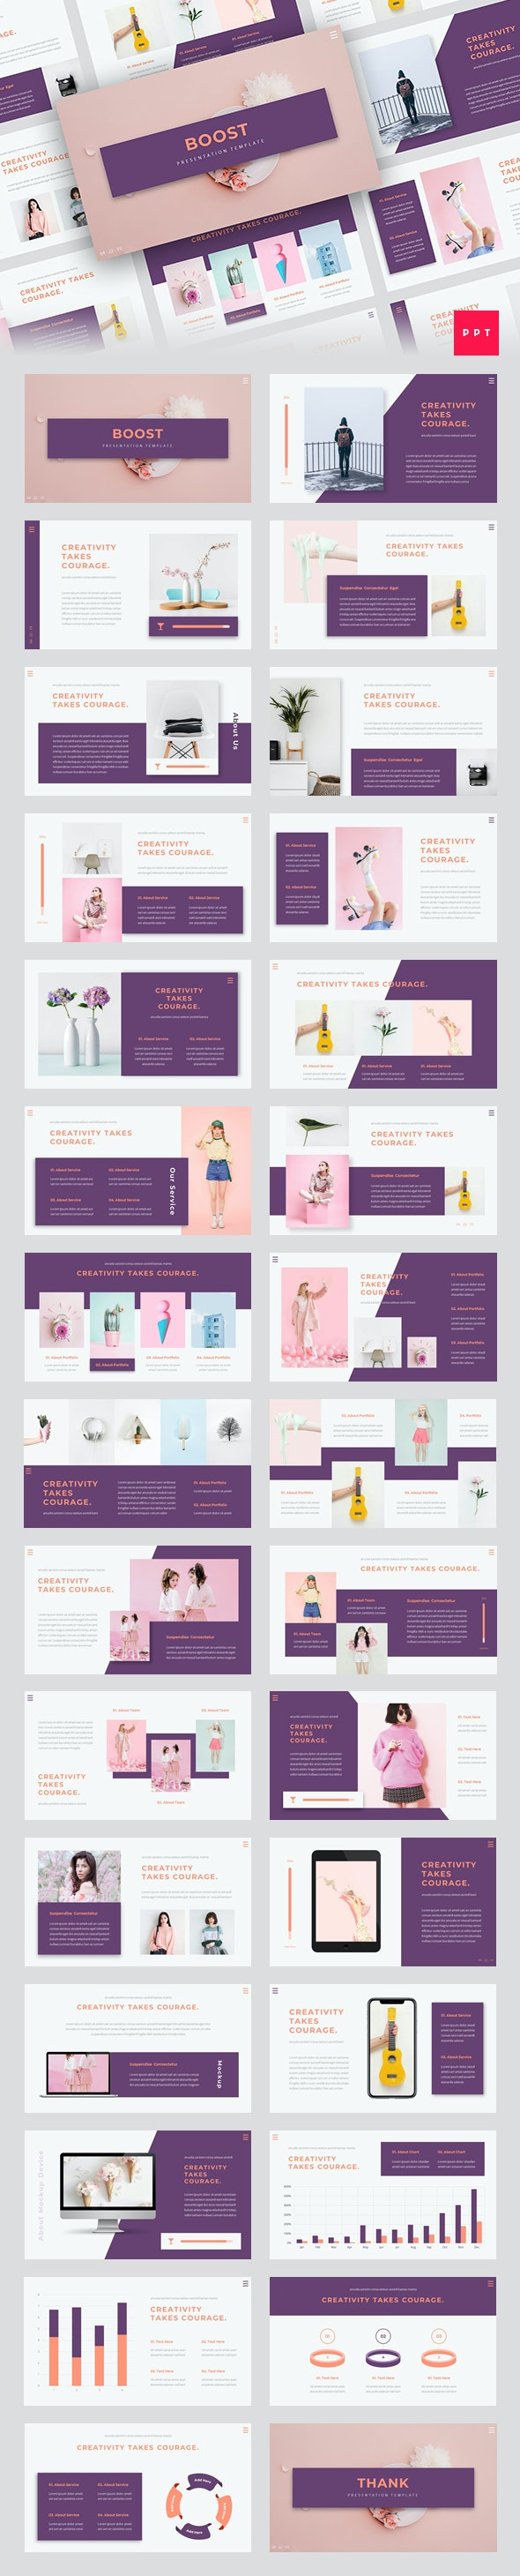 Boost - Creative PowerPoint Template - Creative PowerPoint Templates